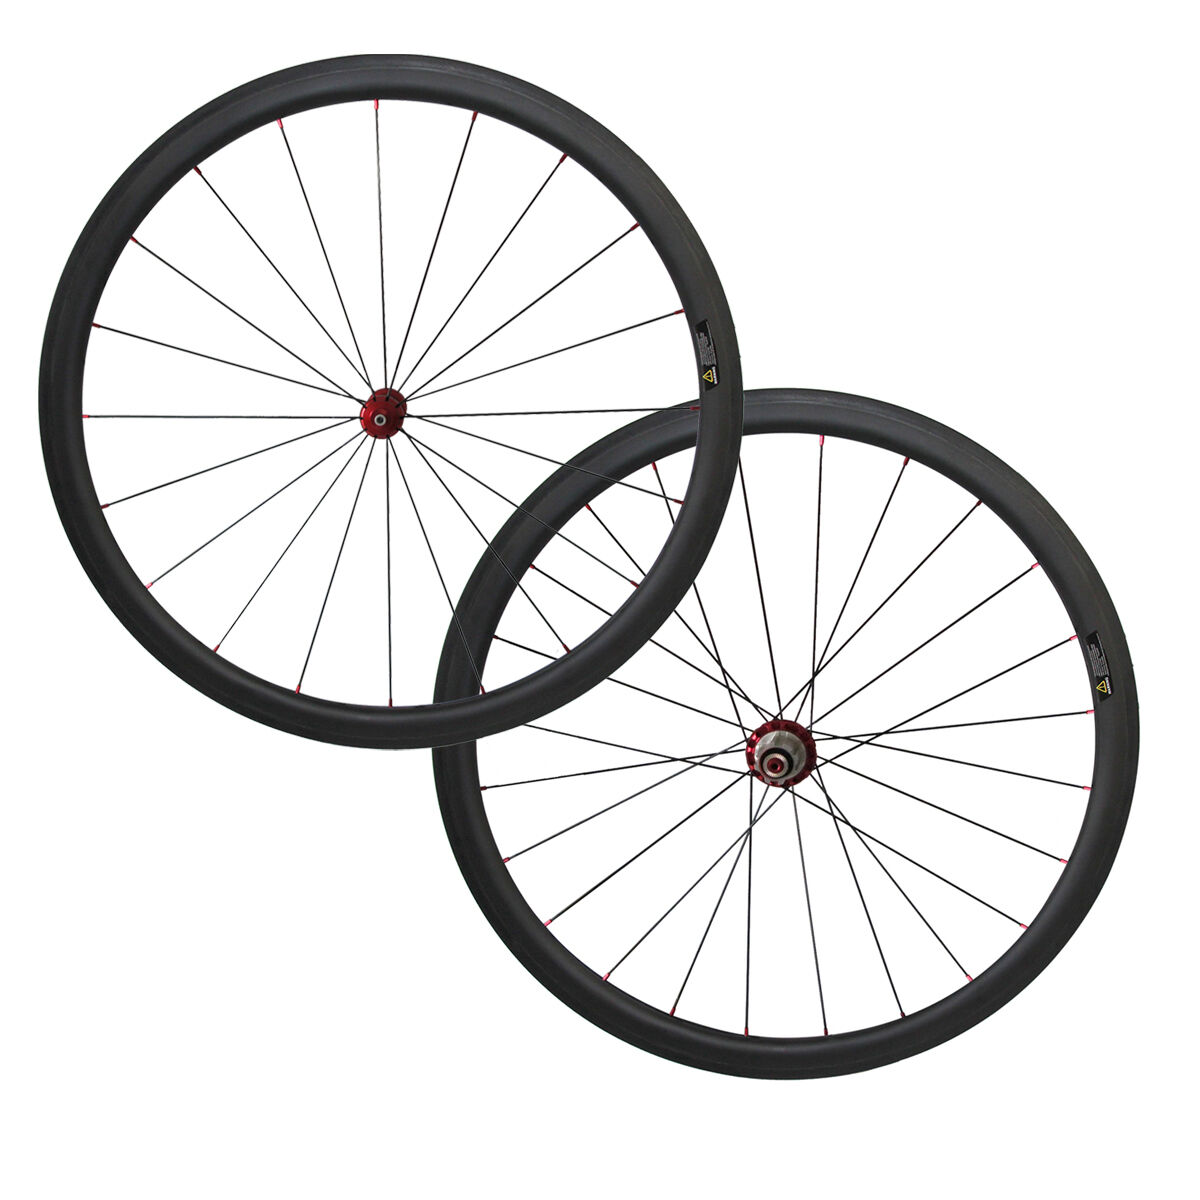 1390g Straight pull 38mm clincher wheelset with Powerway R36 carbon  hub  wholesale price and reliable quality